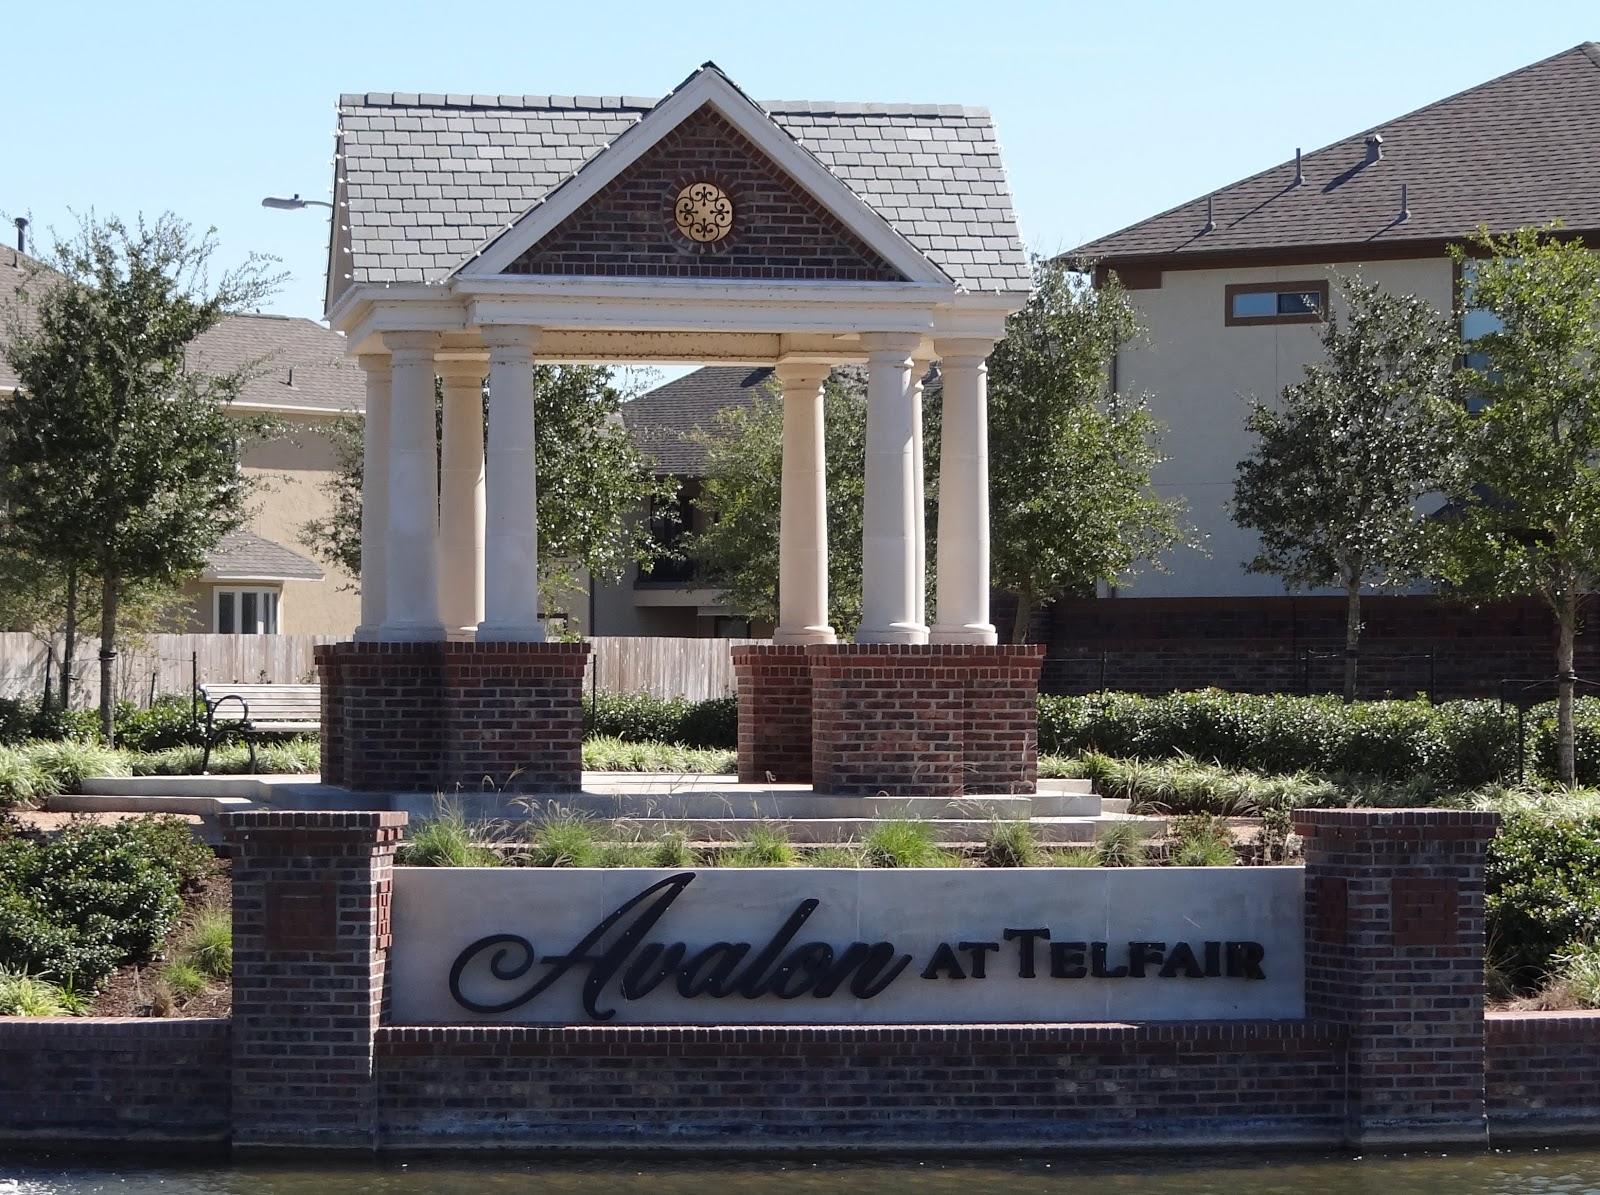 Telfair model home park